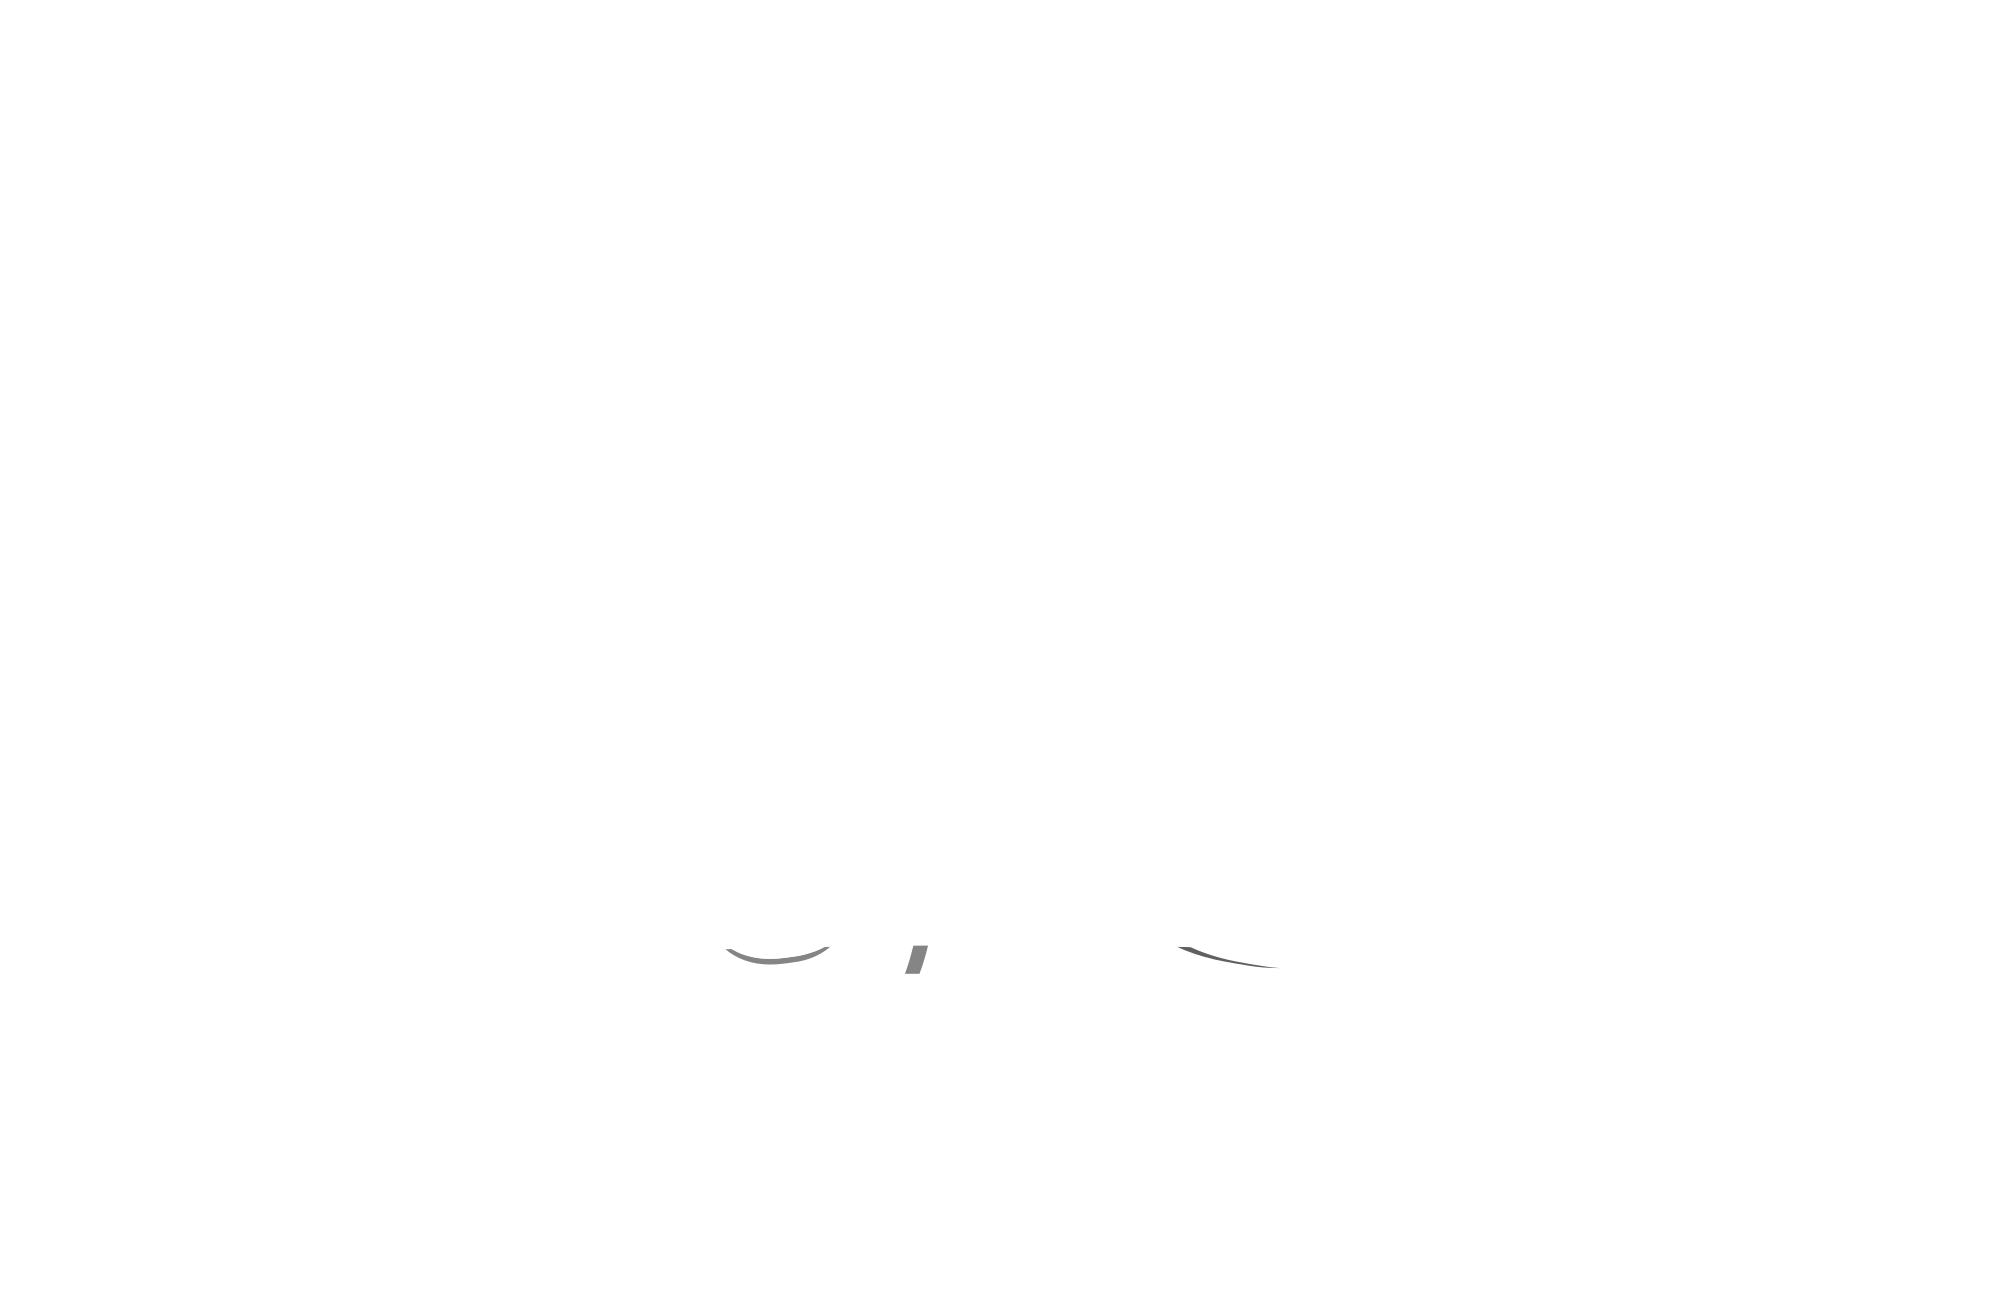 More-Bookings